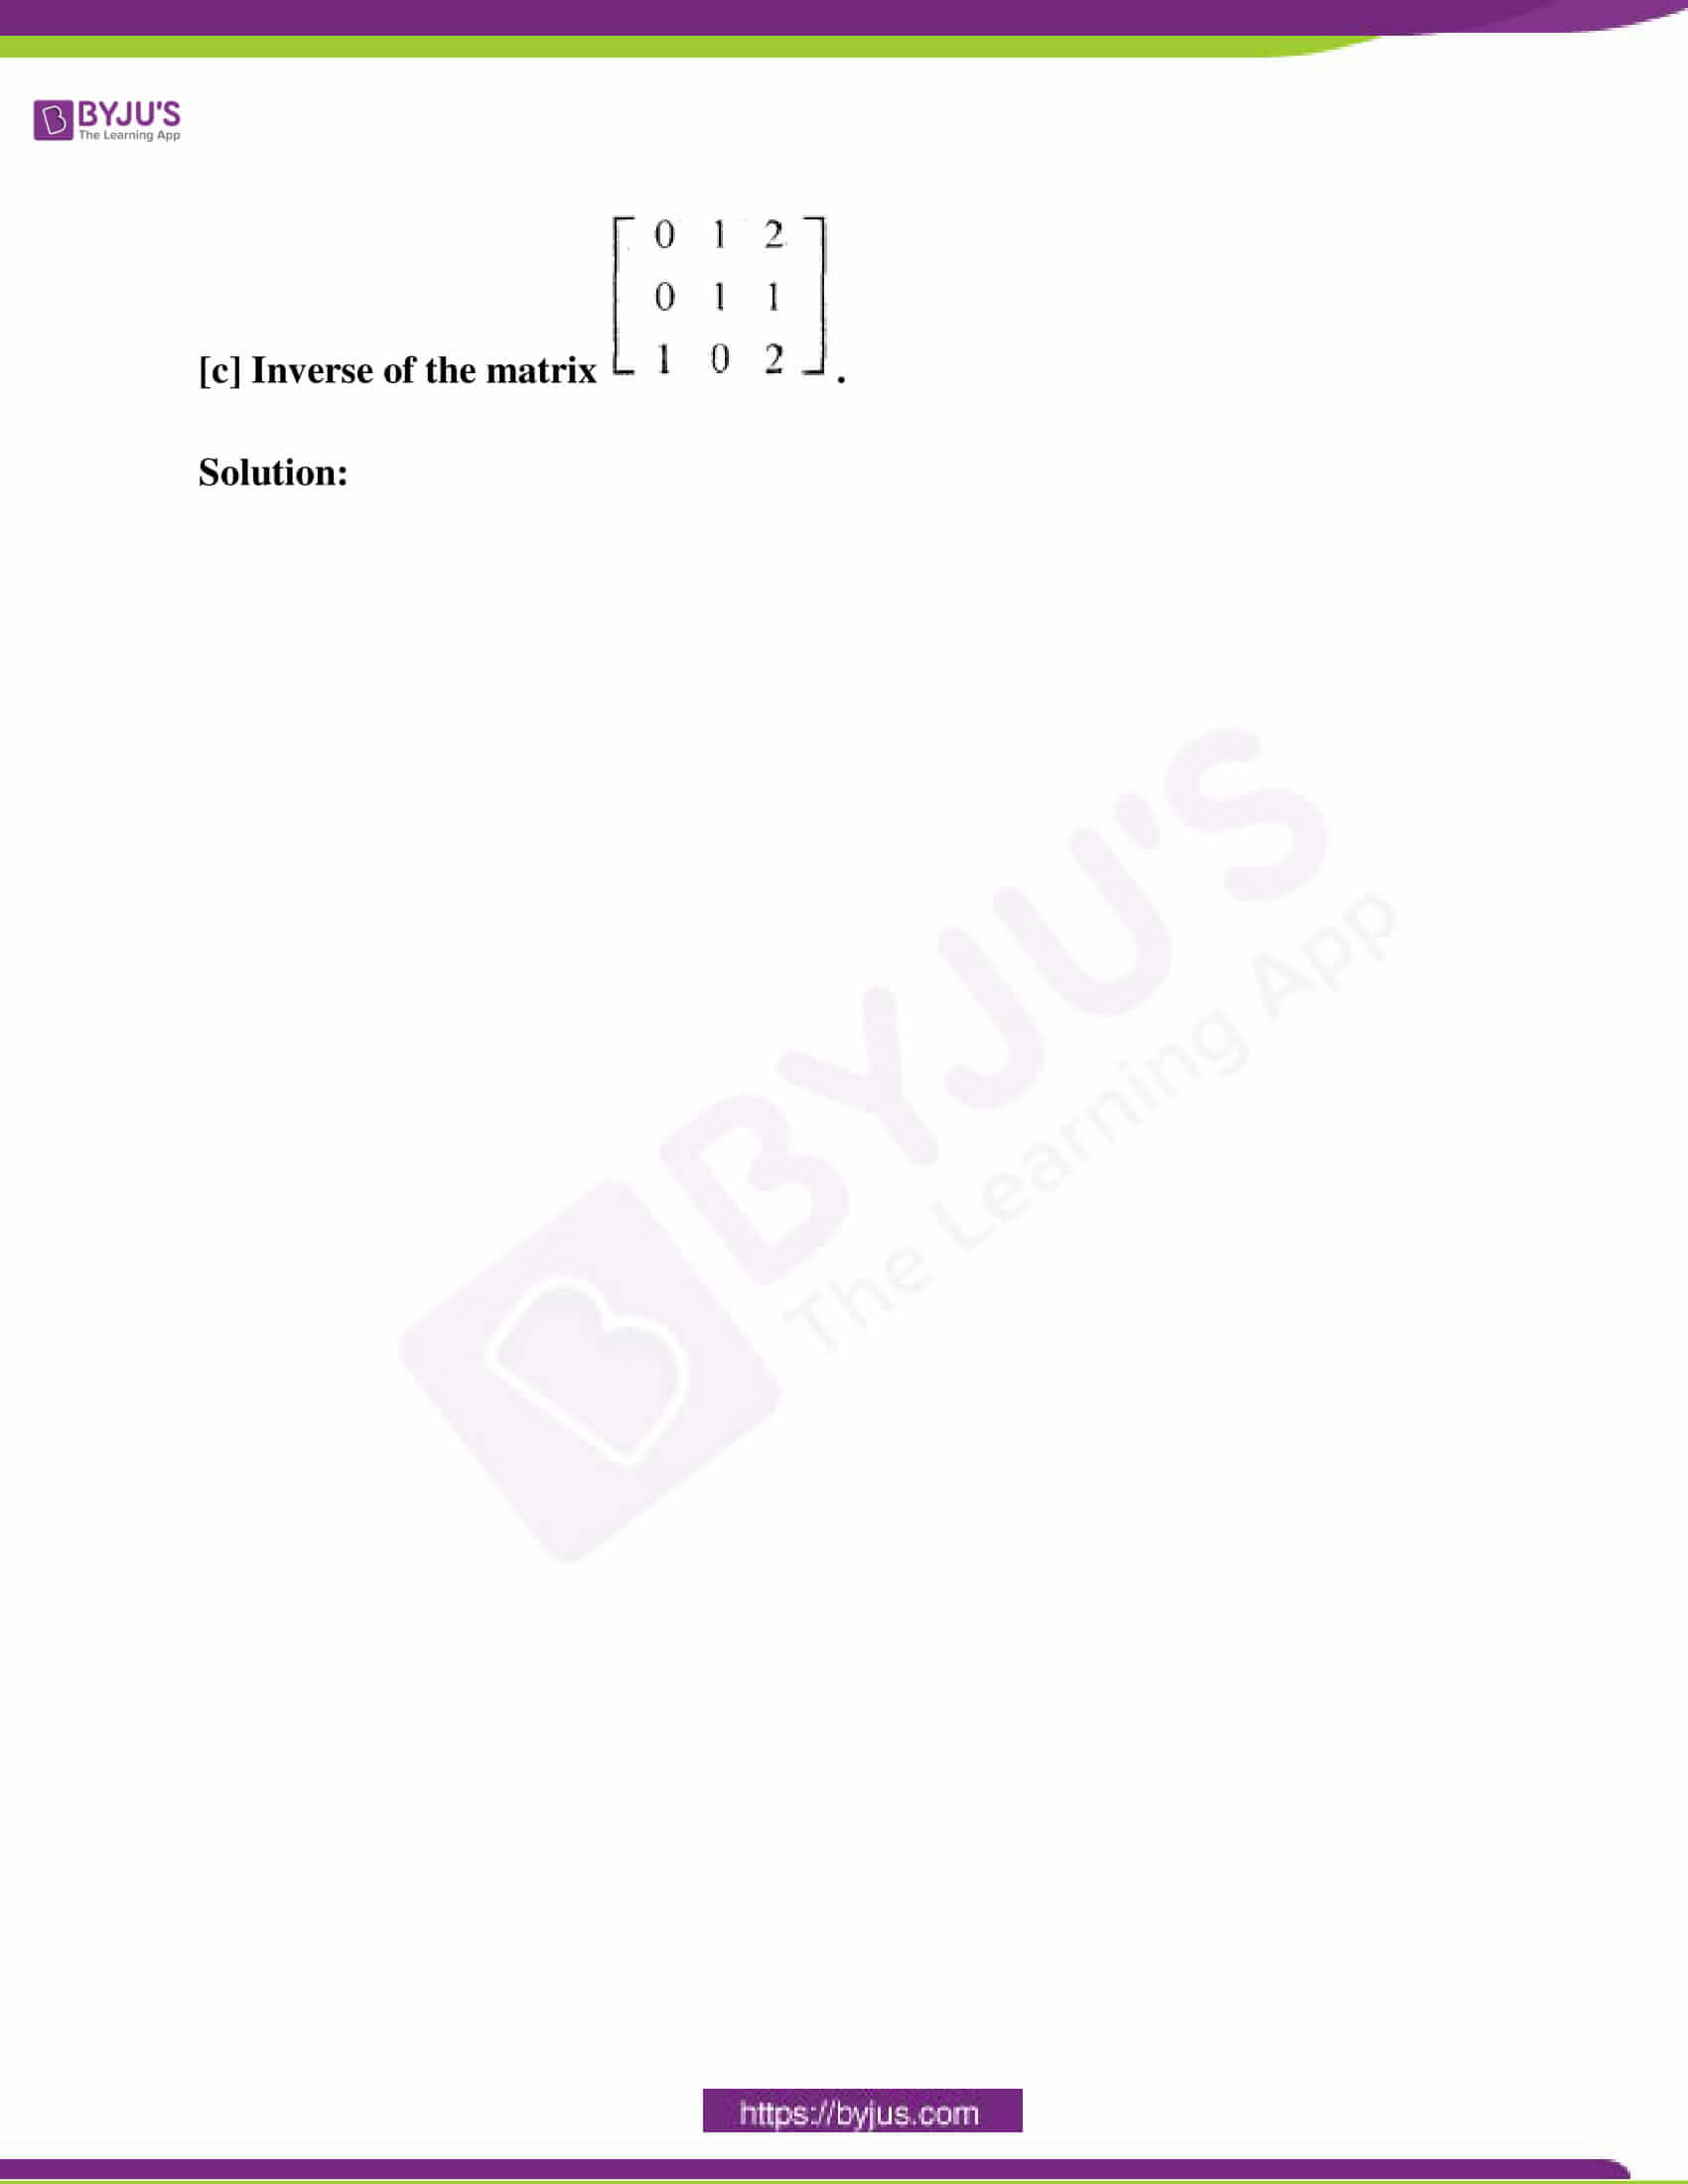 kerala class 12 examination question paper solutions march 2015 02